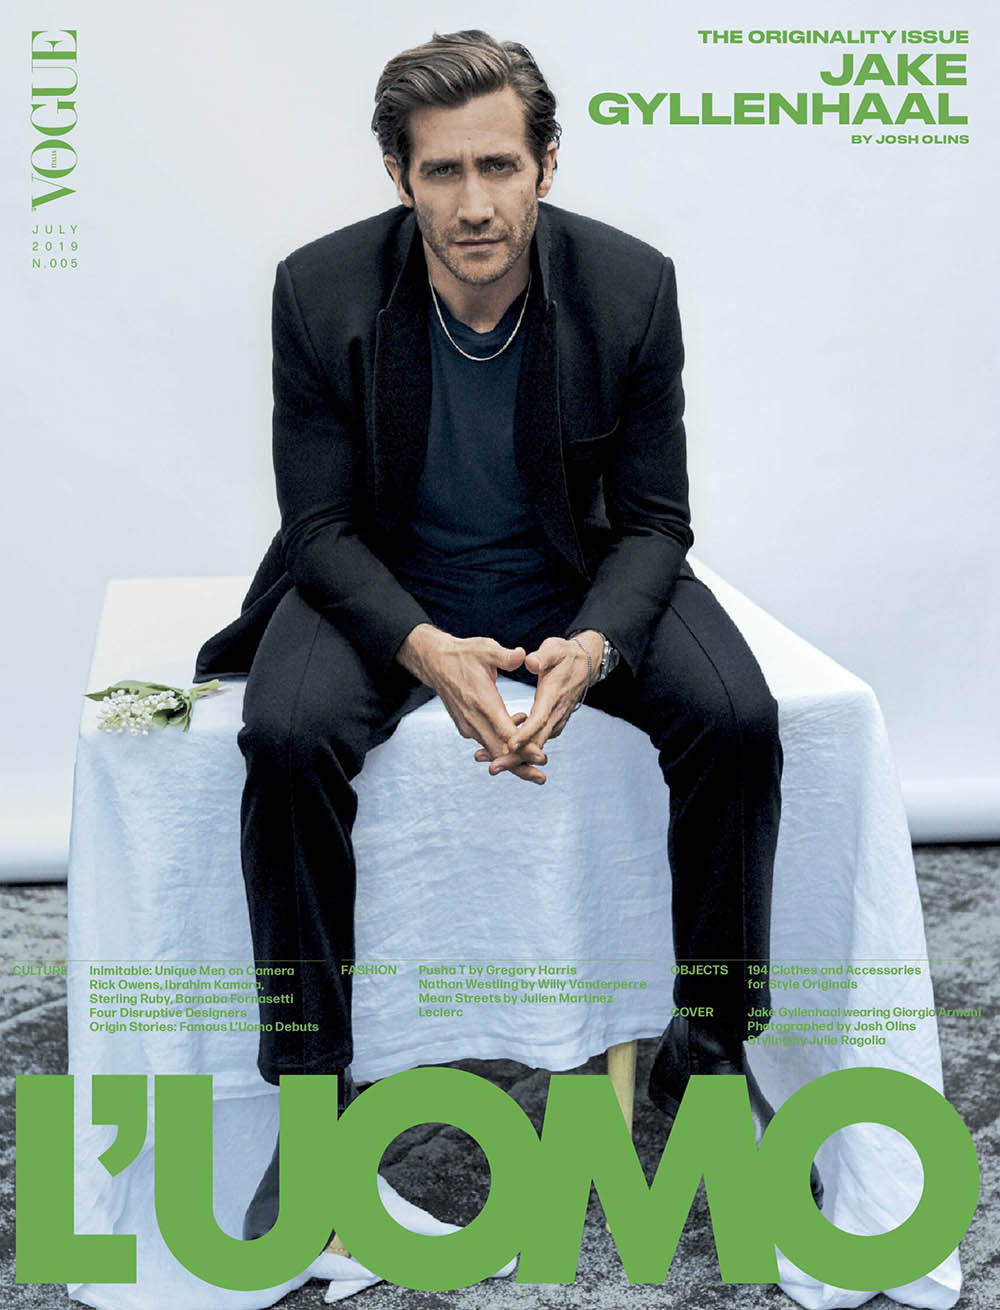 Jake Gyllenhaal covers L'Uomo Vogue July 2019 by Josh Olins